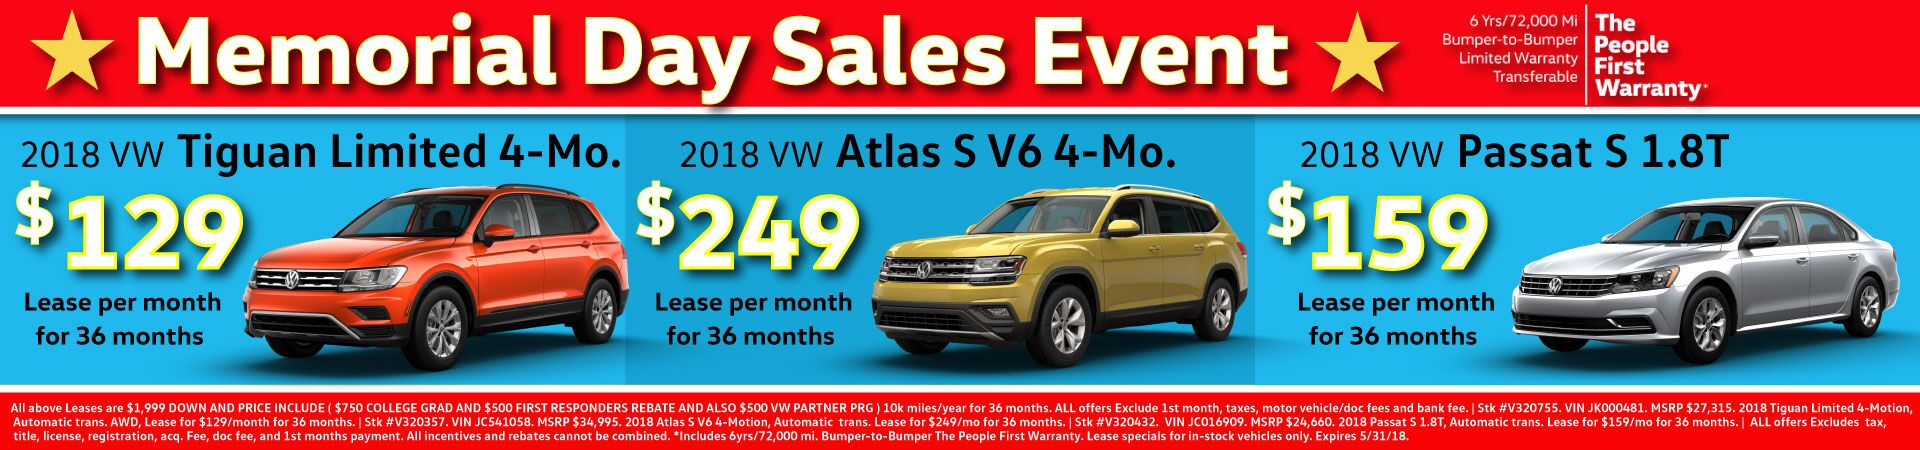 Memorial Day Sales Event at Douglas VW in Summit!